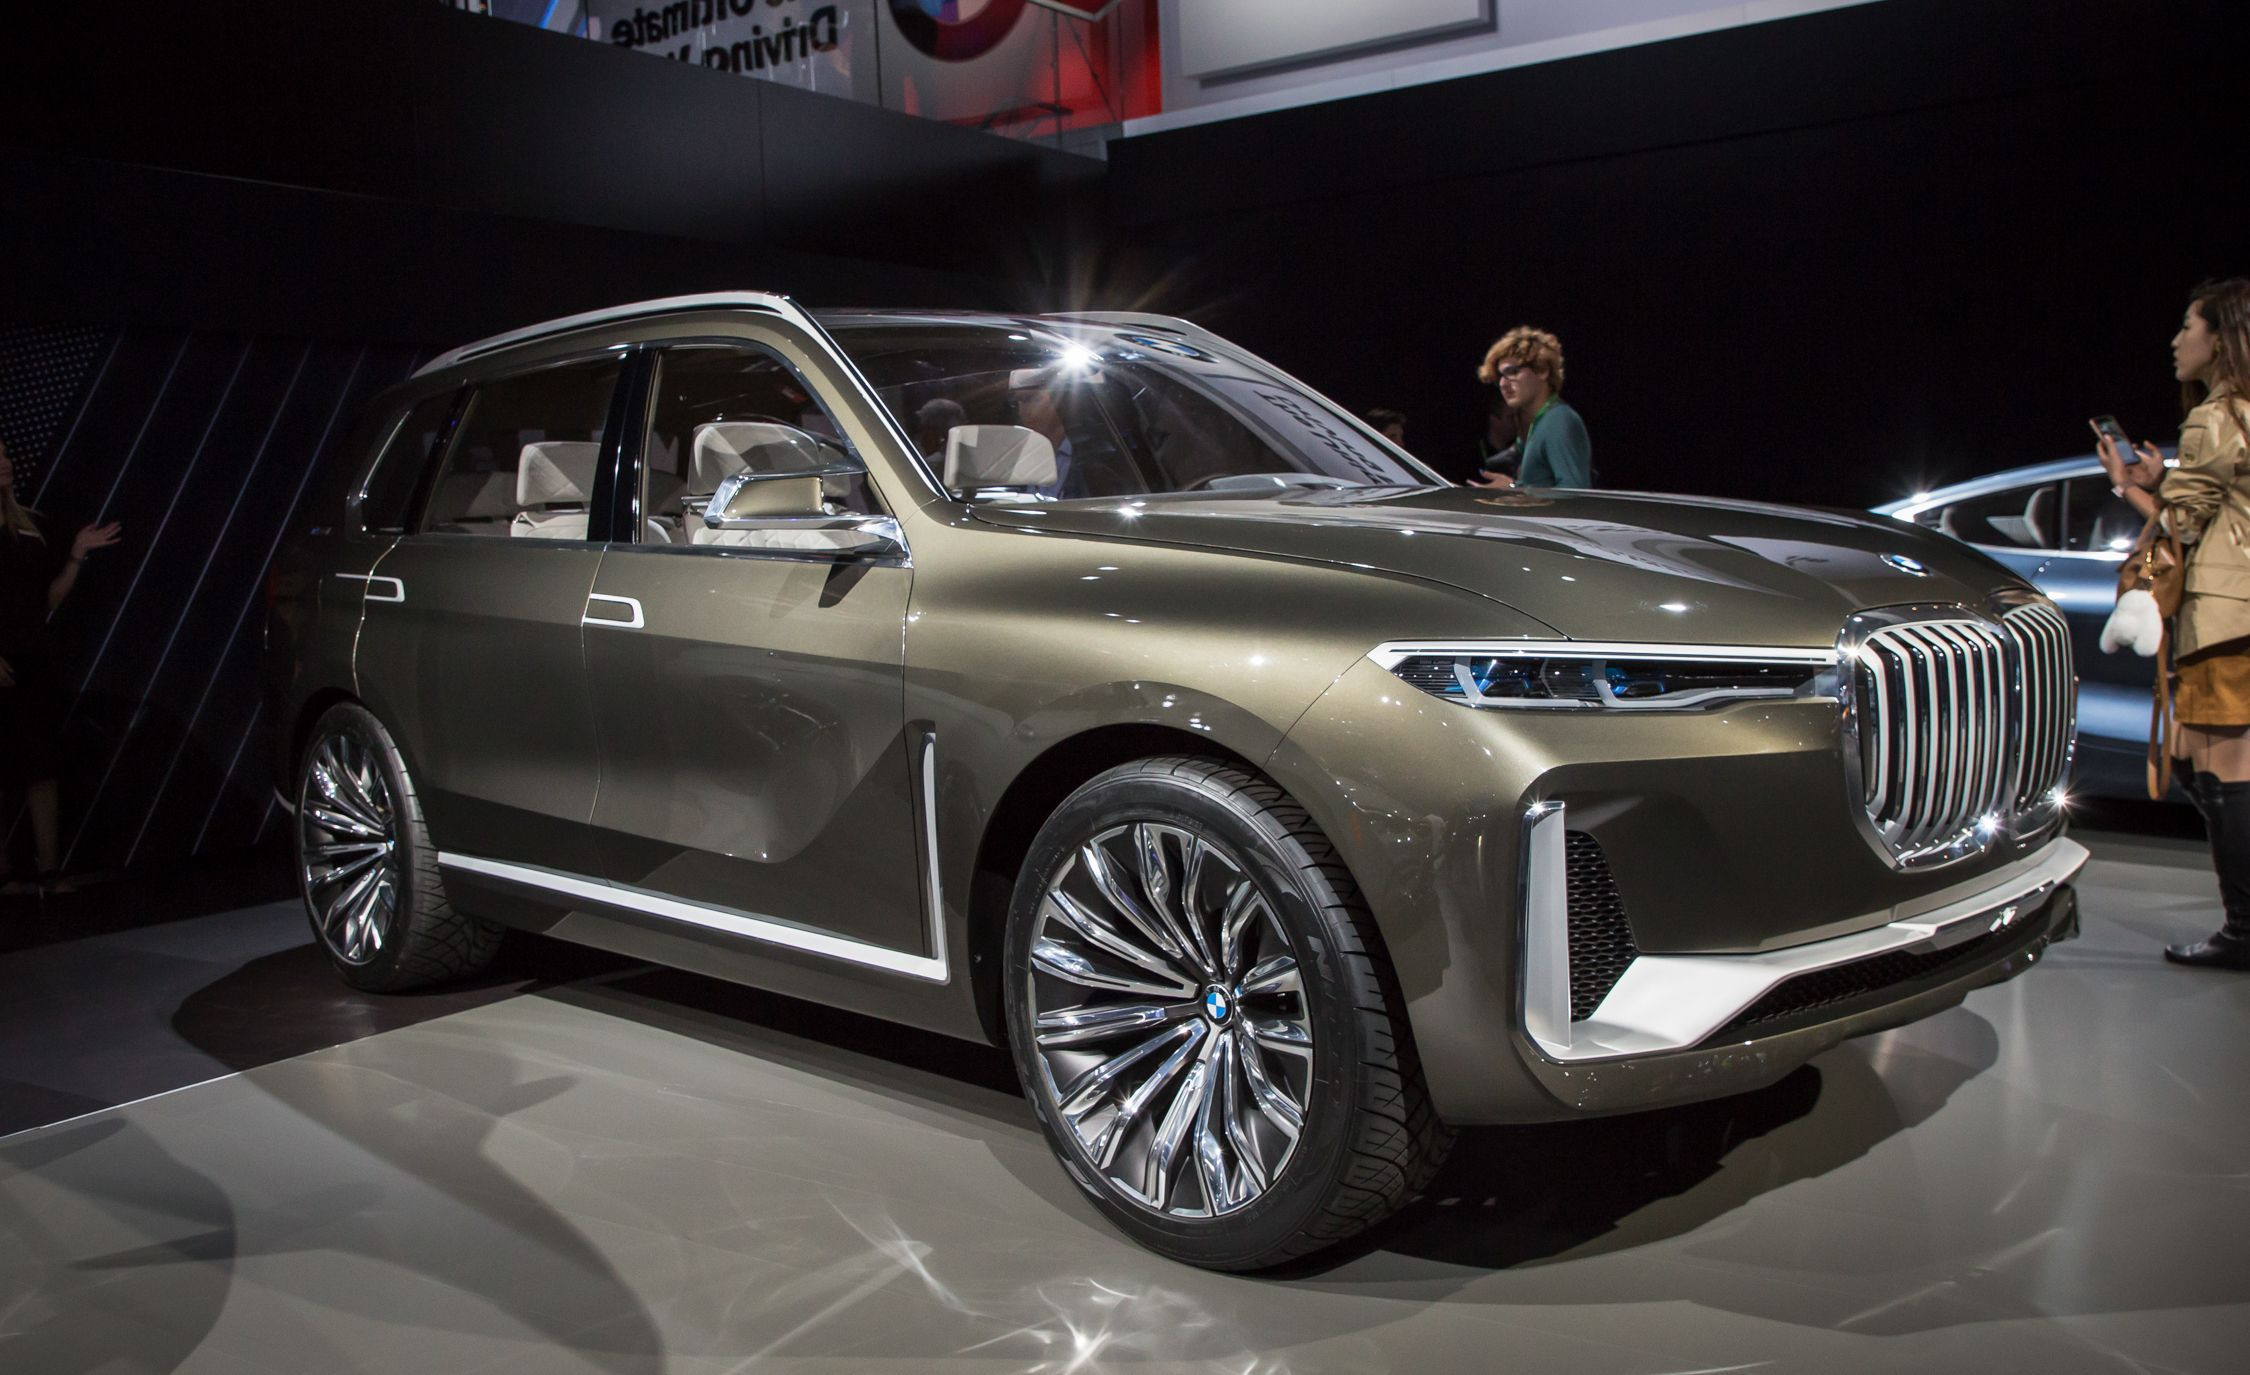 Used Rolls Royce For Sale >> BMW Concept X7 iPerformance Pictures | Photo Gallery | Car and Driver